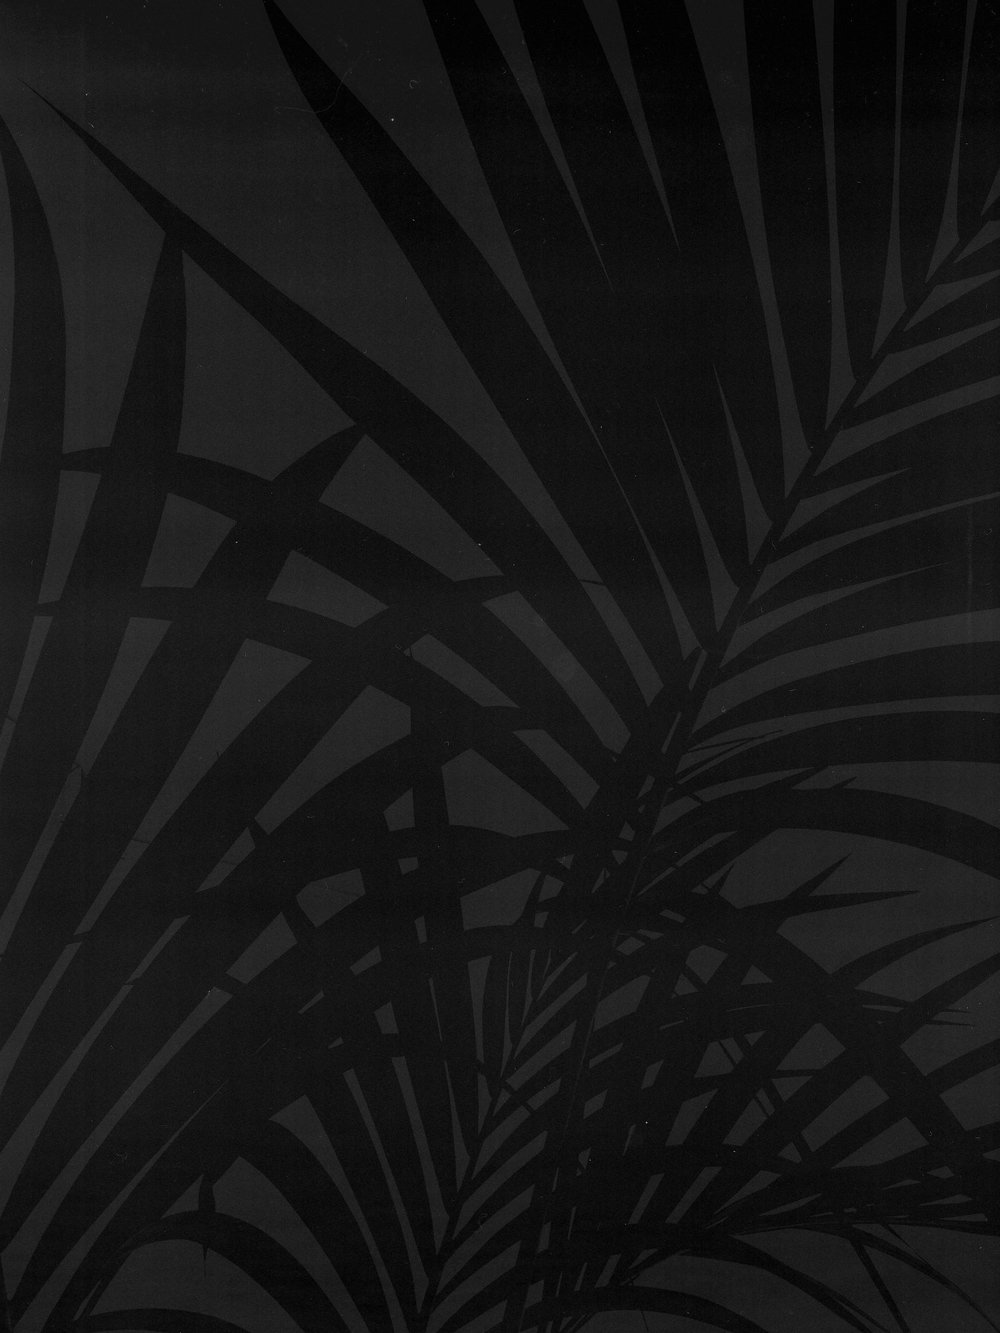 palm tree bw1.jpg